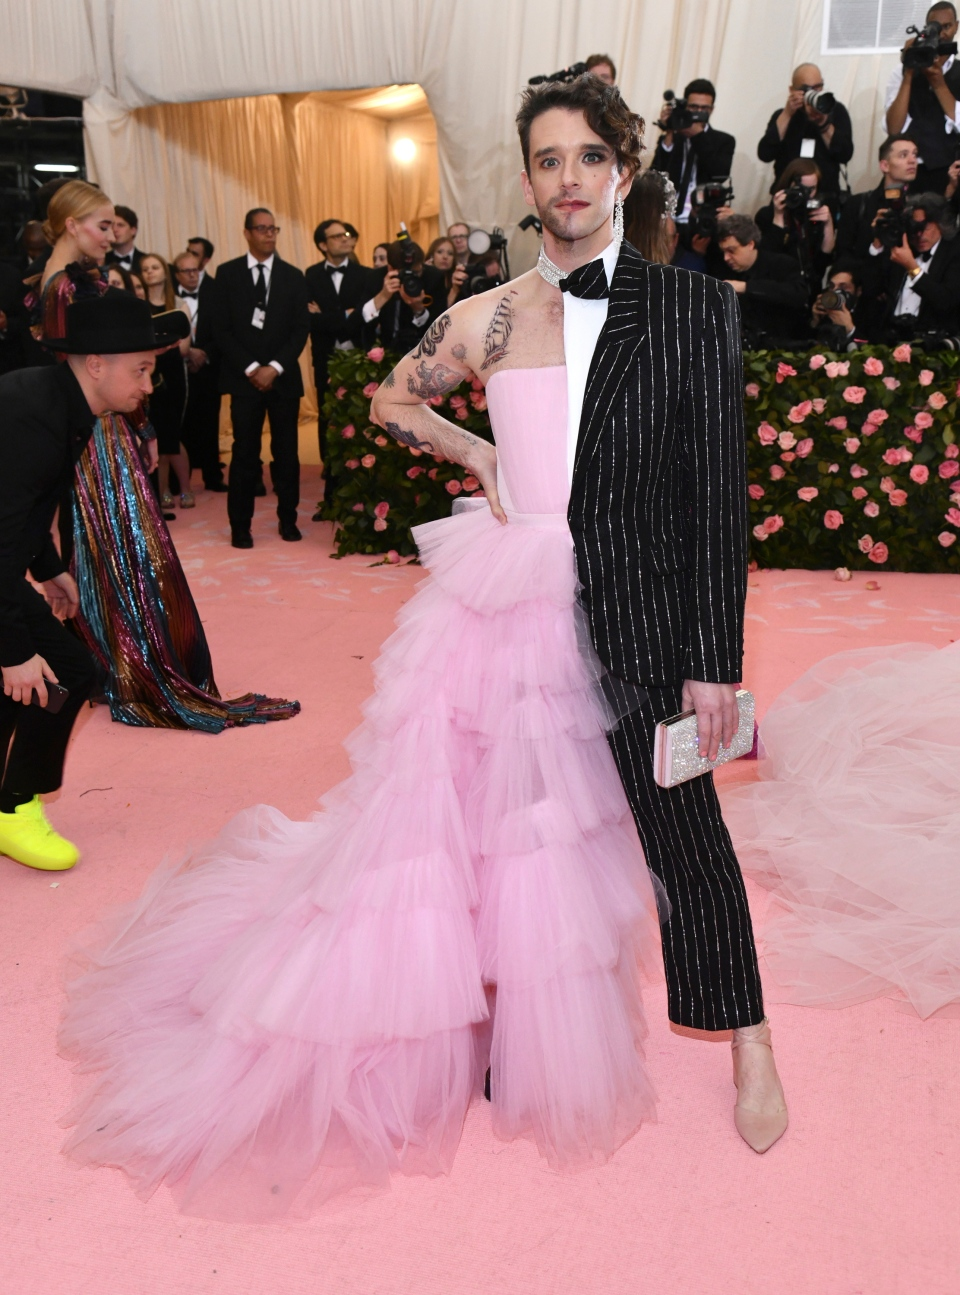 """Michael Urie attends The Metropolitan Museum of Art's Costume Institute benefit gala celebrating the opening of the """"Camp: Notes on Fashion"""" exhibition on Monday, May 6, 2019, in New York. (Photo by Charles Sykes/Invision/AP)"""